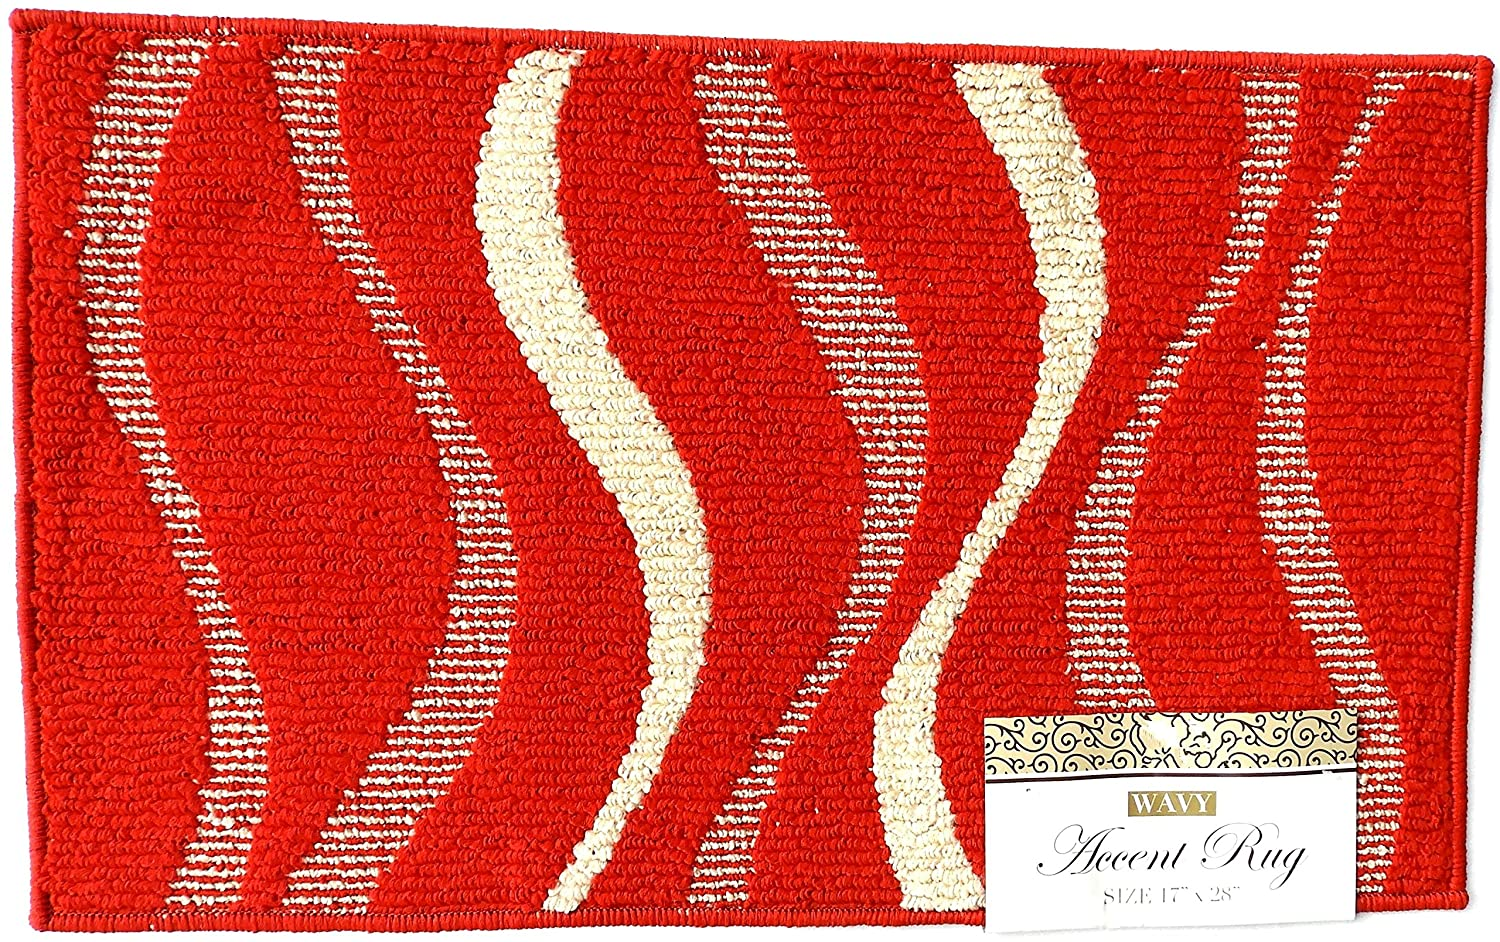 Accent Rug Wavy Design Brick Red With Beige Waves 17' x 28' Machine Washable Latex Backing Dependable Industries inc 1700Red